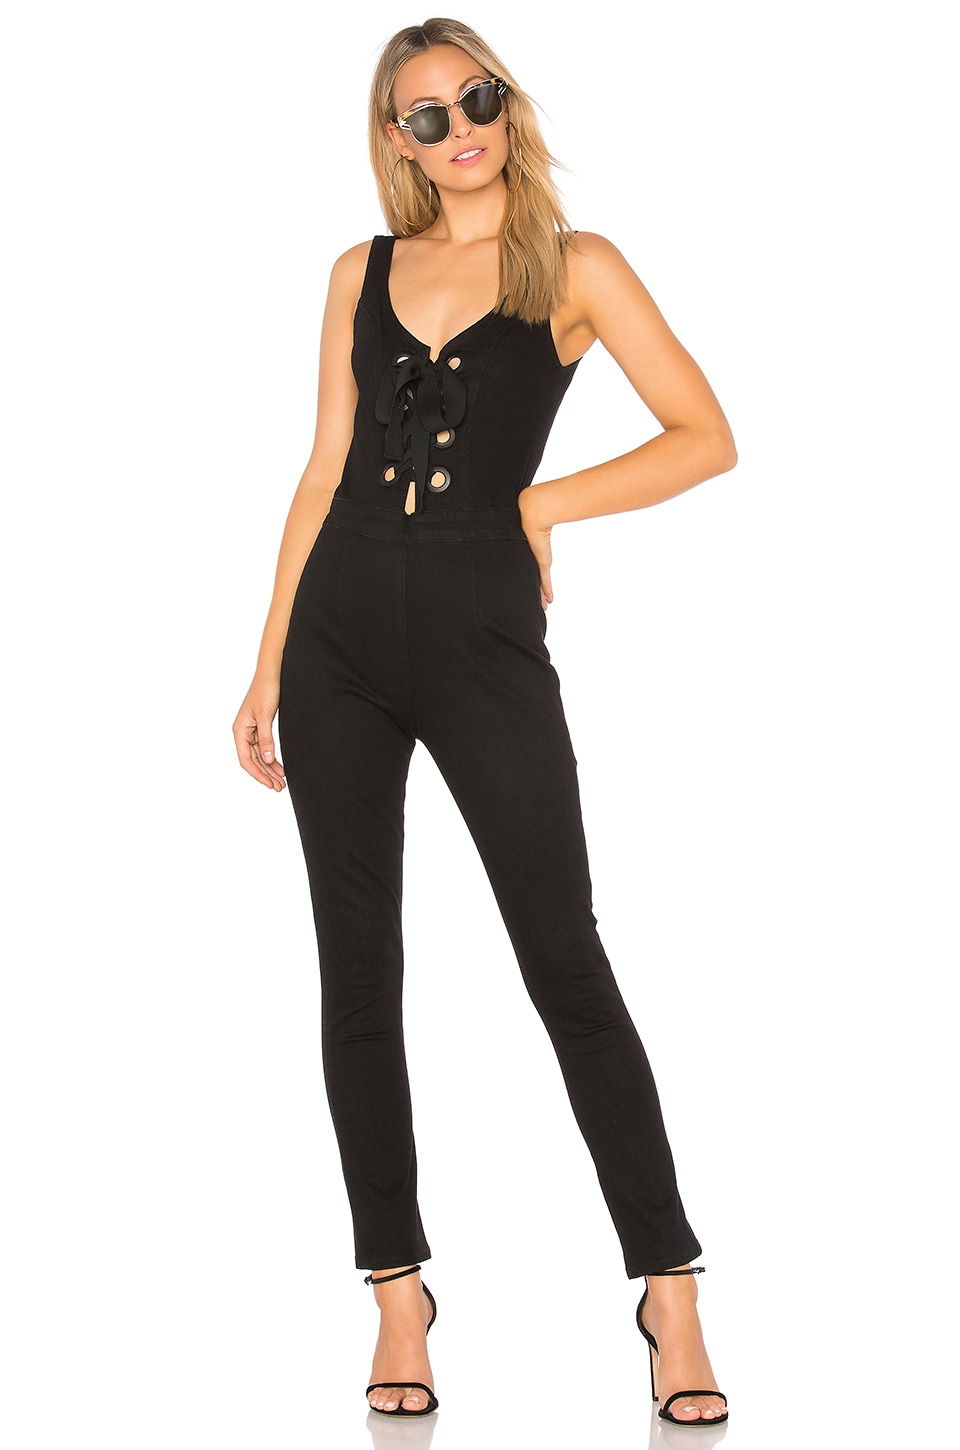 3x1 Lacy Jumpsuit in Black No 1